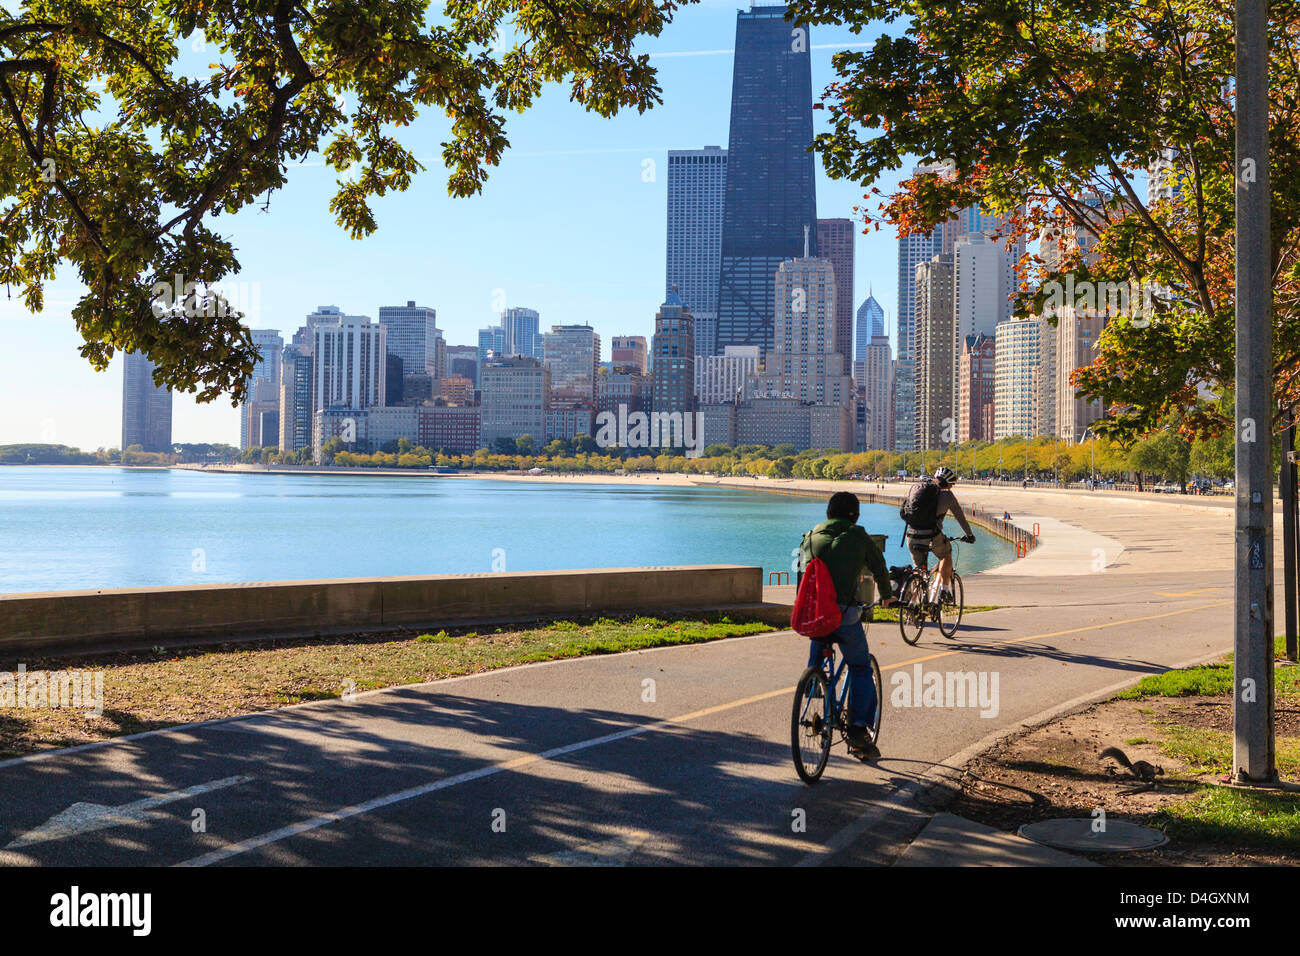 Cyclists riding along Lake Michigan shore with the Chicago skyline beyond, Chicago, Illinois, USA - Stock Image